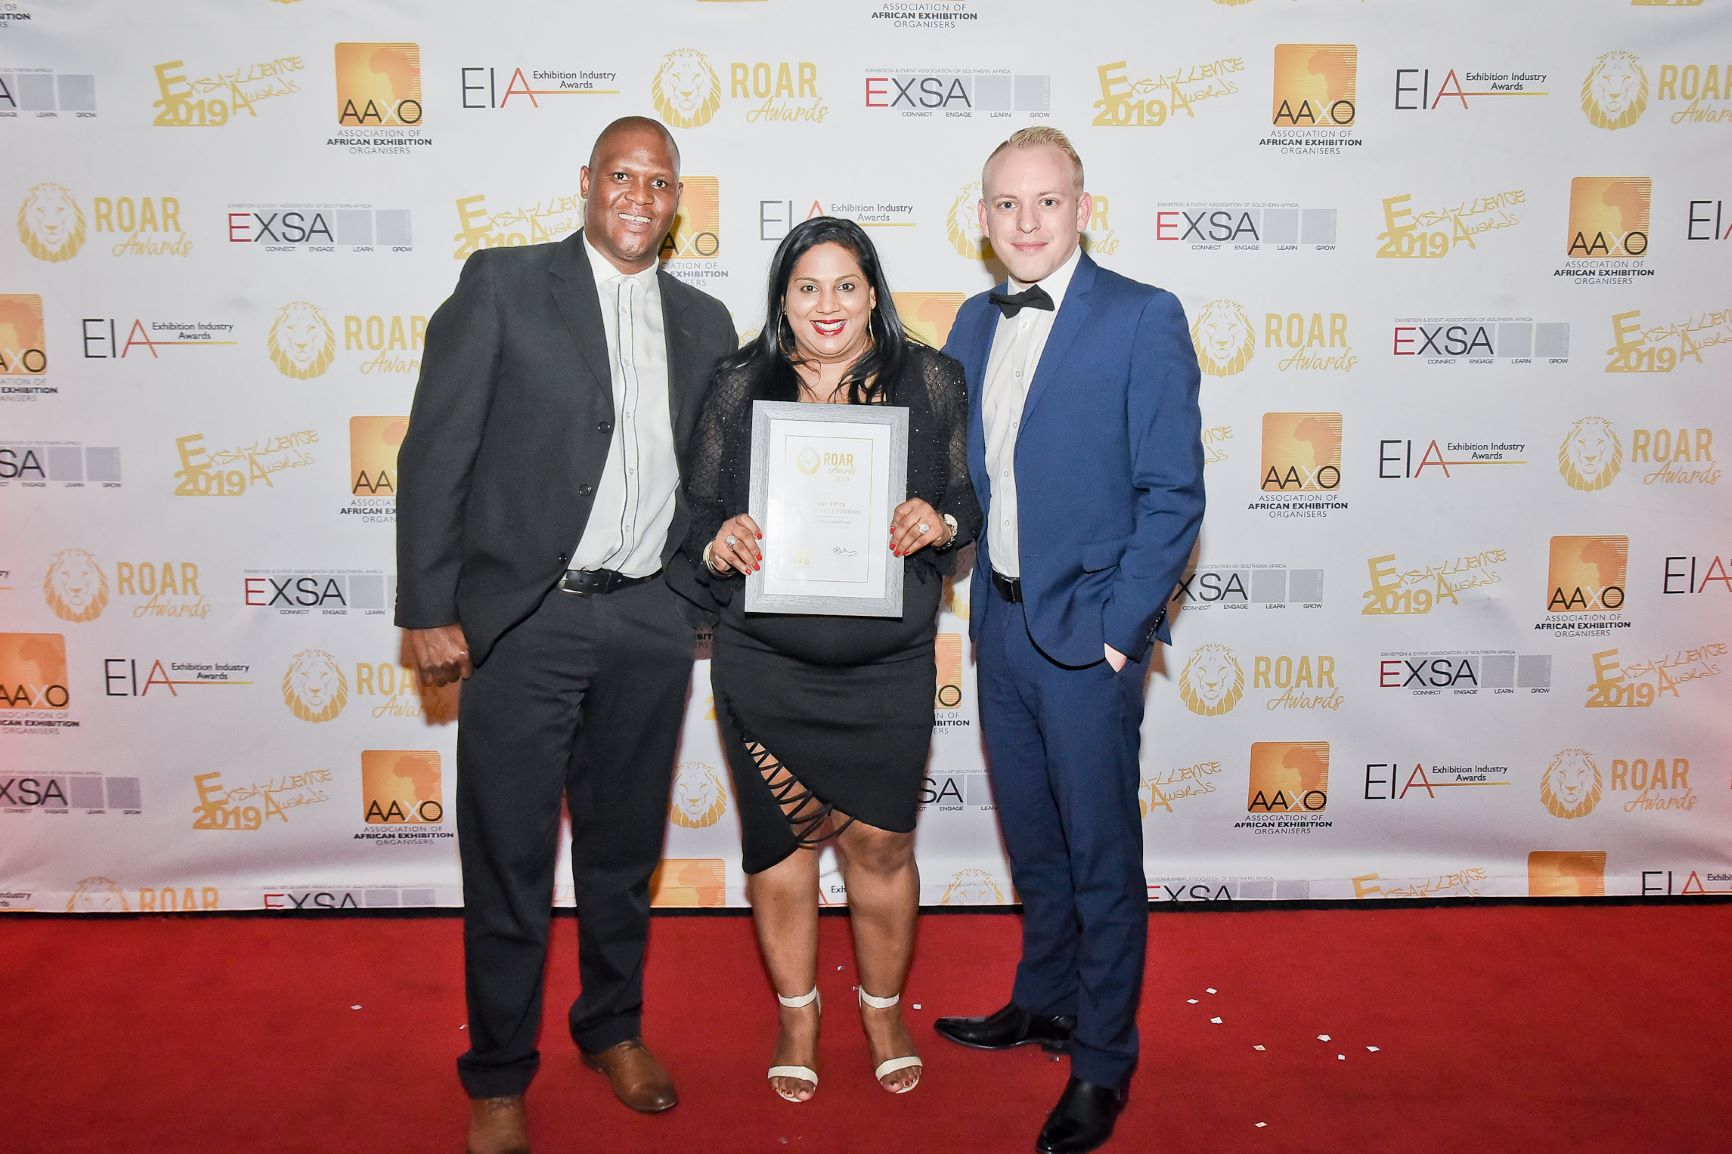 Specialised Exhibitions celebrating the Propak Africa award. (From left) Emmanuel Patty, Operations Director; Keraysha Pillay, Marketing Manager; and Sven Smit, Portfolio Director. Image credit: Specialised Exhibitions